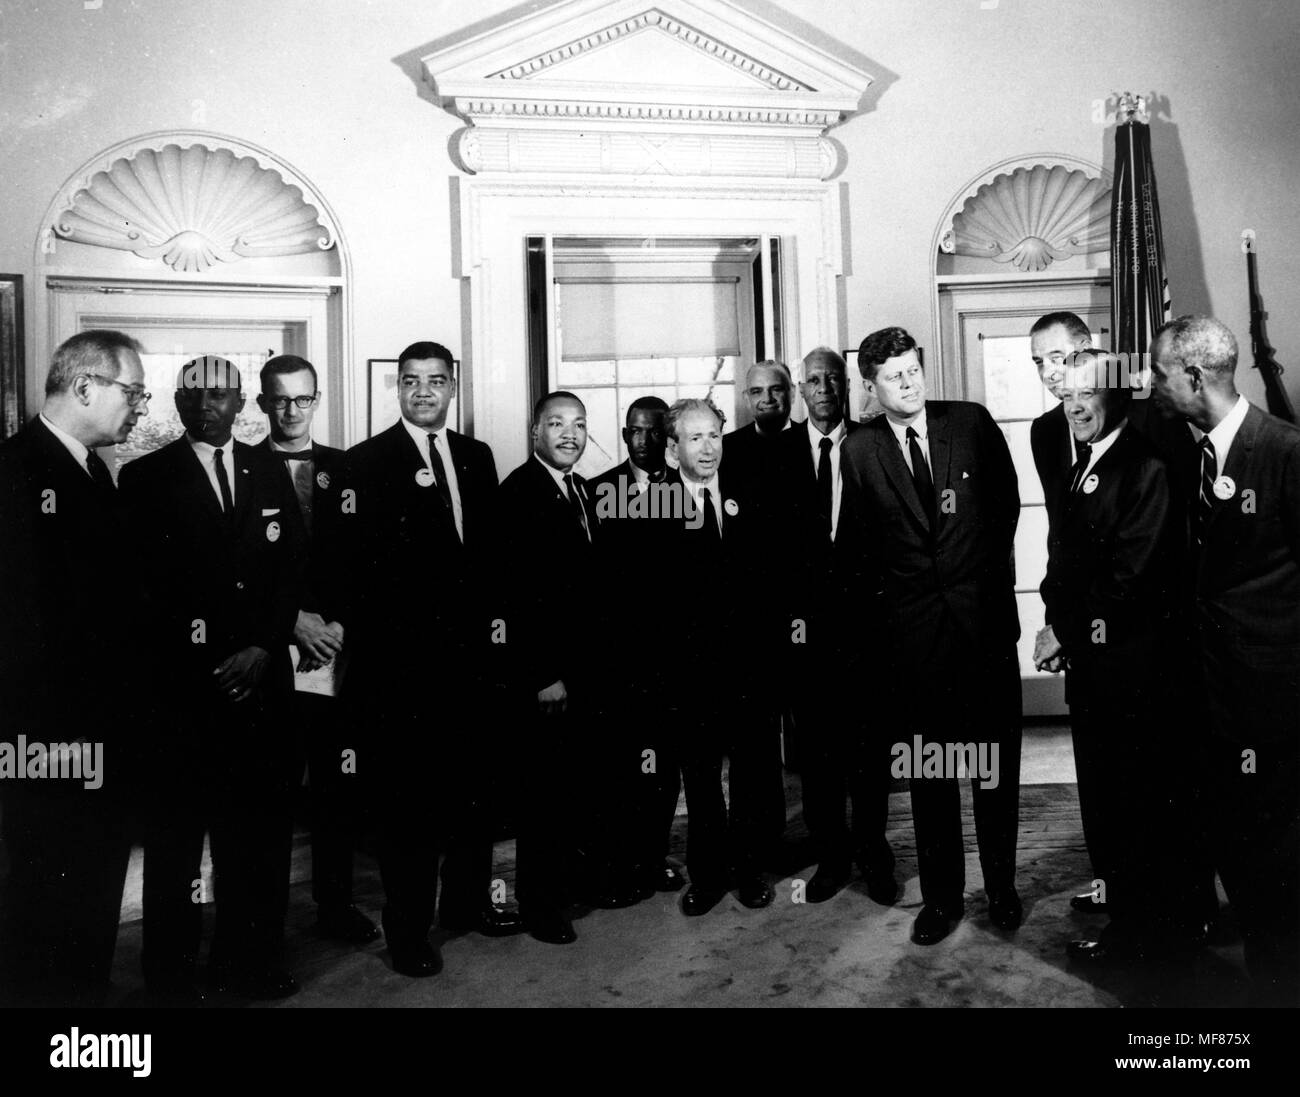 AR 8090-A  28 August 1963 President meets with the Leaders of the March On Washington.  L-R: Secretary of Labor Willard Wirtz, Floyd McKissick, Matthew Ahmann, Whitney Young,  Rev. Dr. Martin Luther King, Jr., John Lewis, Rabbi Joachim Prinz, Rev. Eugene Carson Blake, A. Philip Randolph, President Kennedy, Vice President Johnson, Walter Ruether, Roy Wilkins. White House, Oval Office. Please credit 'Abbie Rowe, National Park Service/John Fitzgerald Kennedy Library, Boston'. - Stock Image